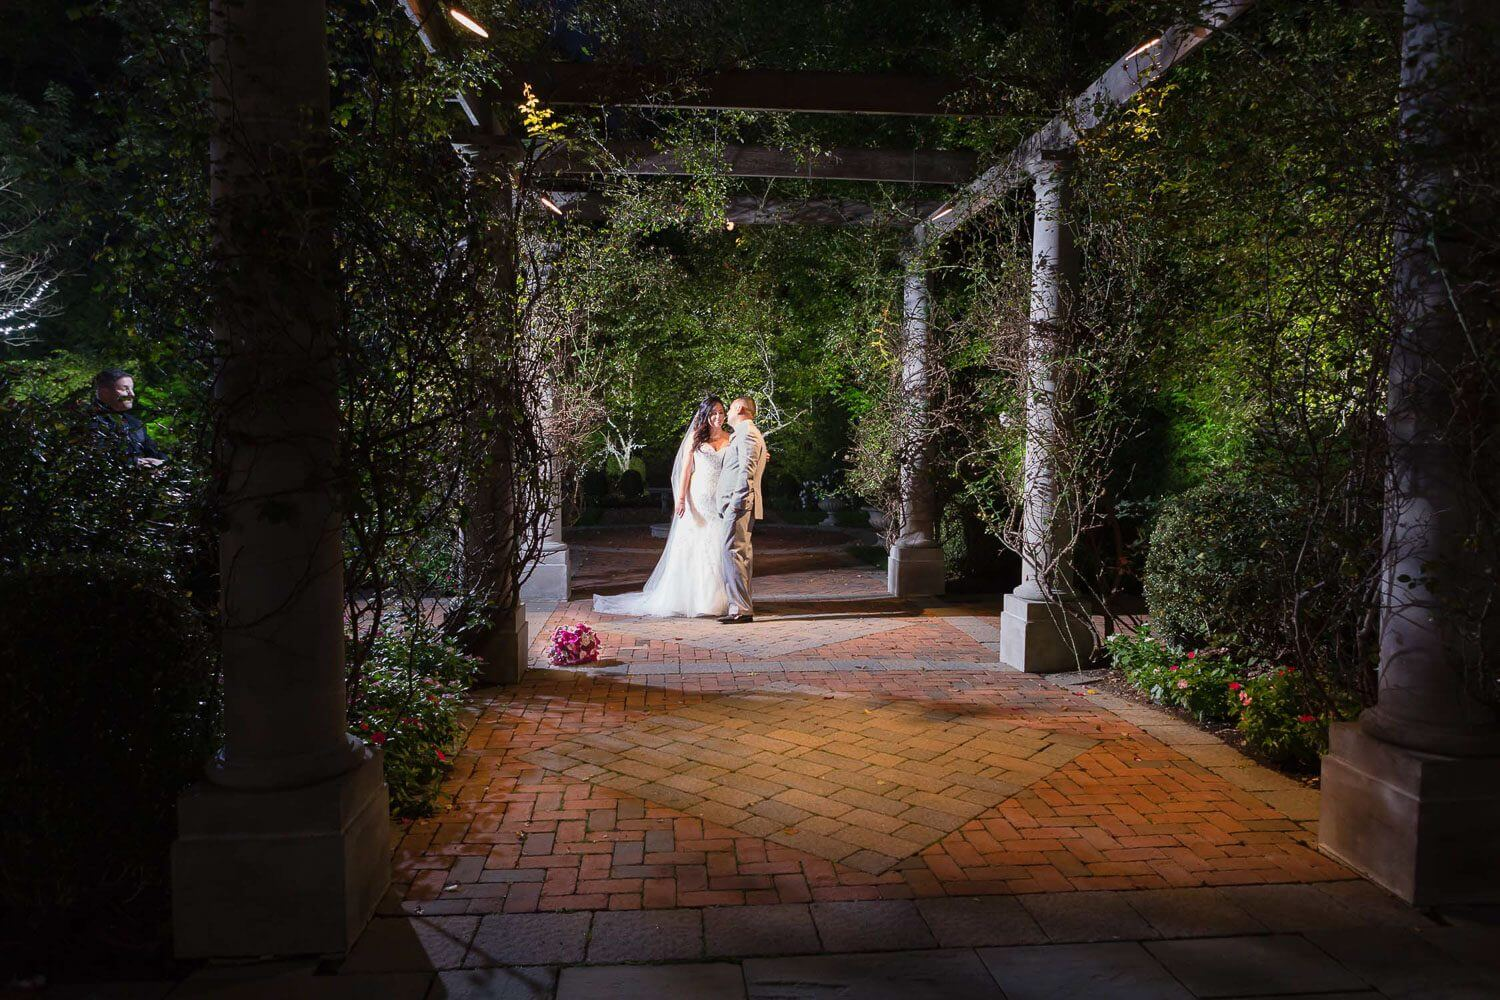 Nightime photo of the bride and groom in the gardens at The Estate at Florentine Gardens New Jersey Wedding Photography